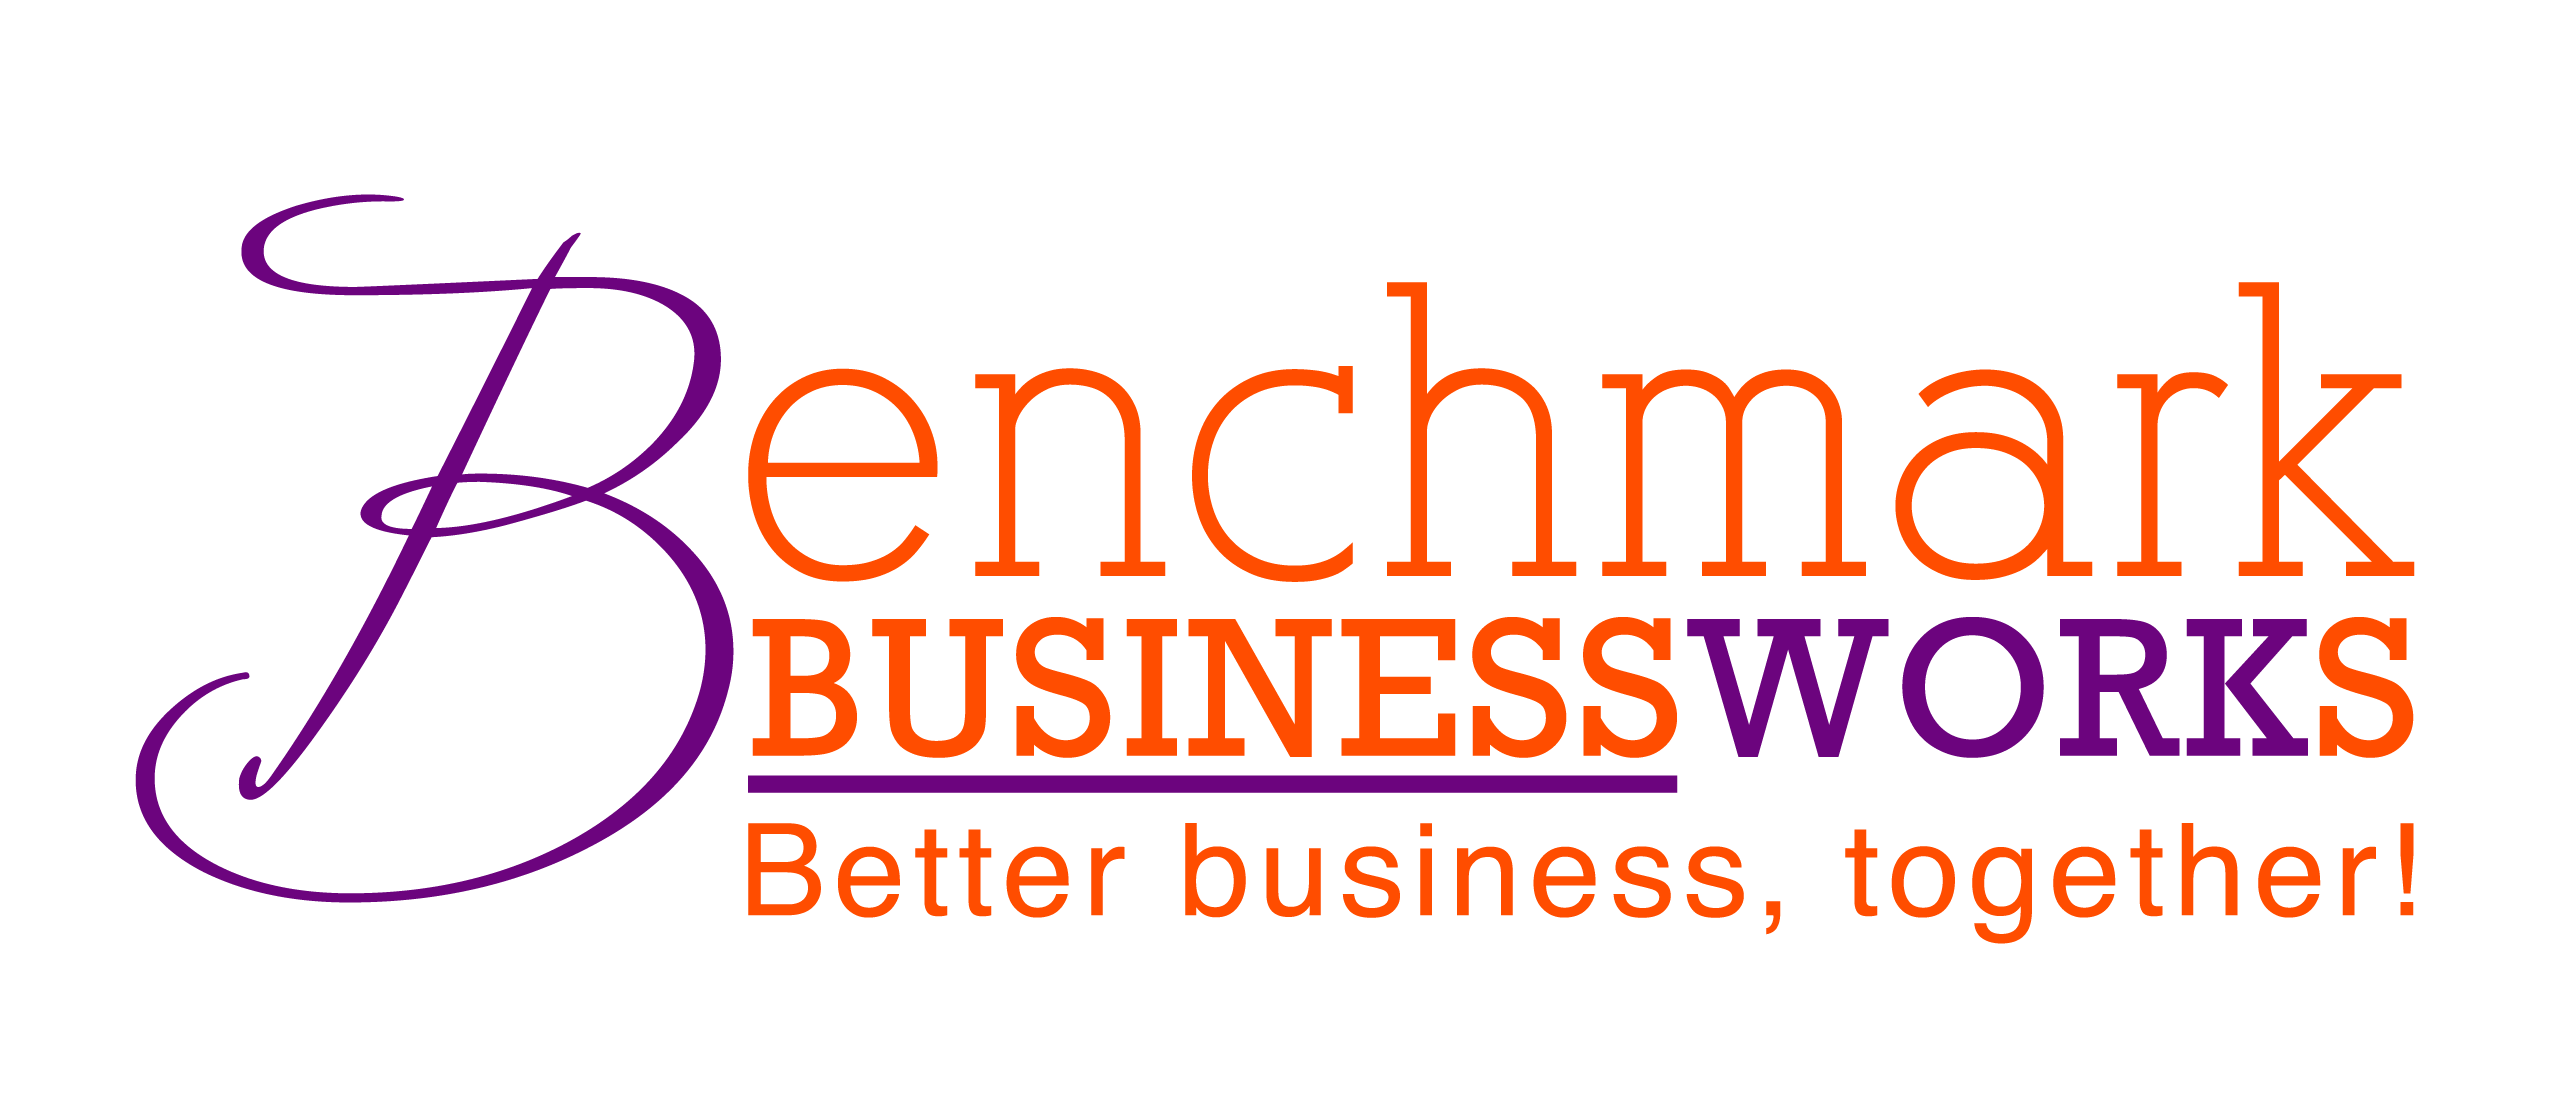 Benchmark Business Works